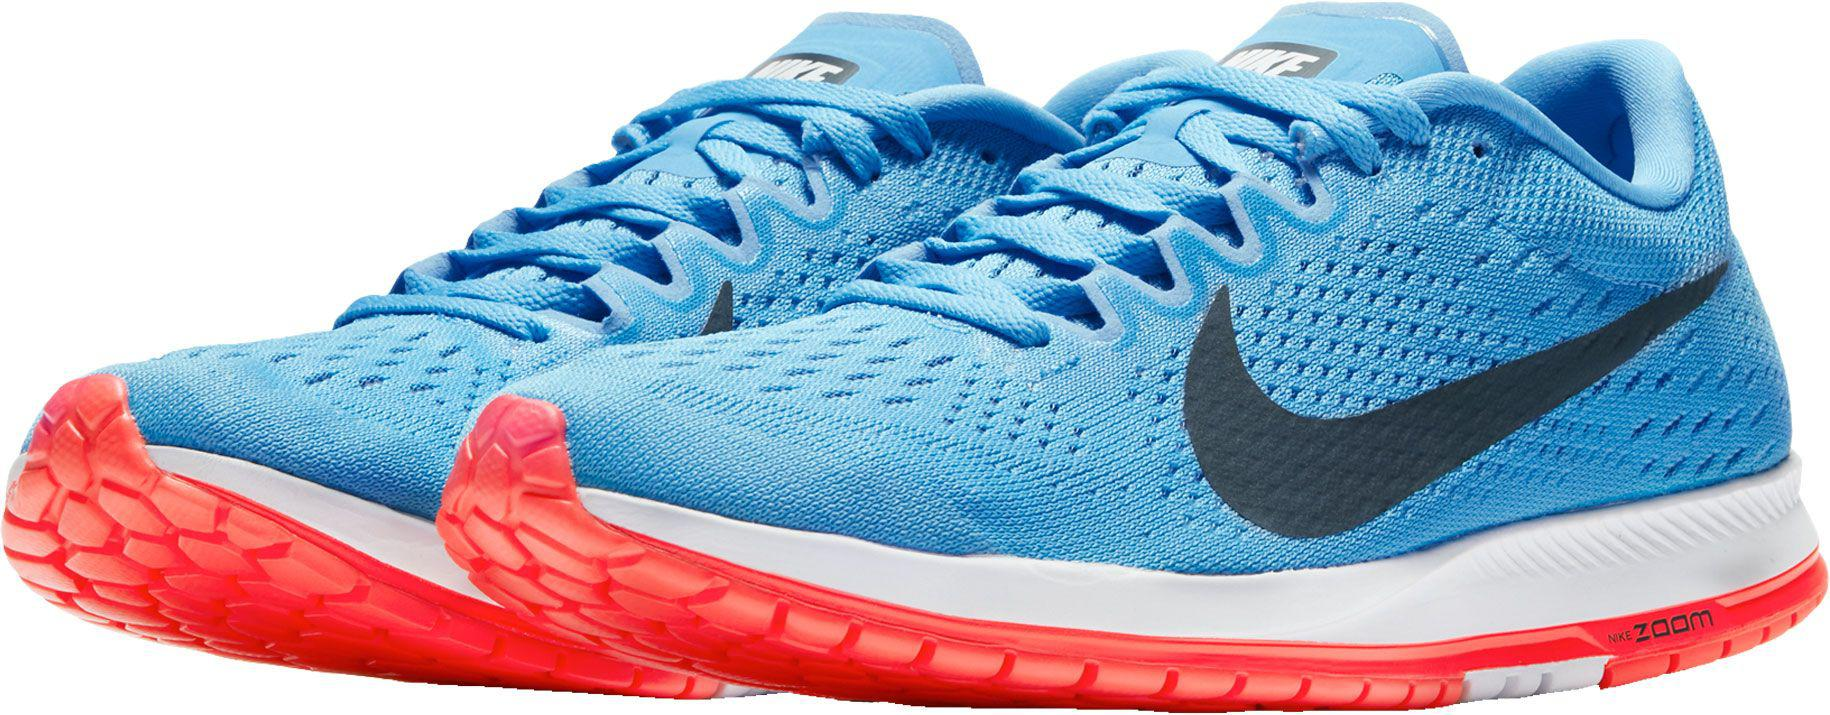 fb35c5ab501a4 Lyst - Nike Zoom Streak 6 Track And Field Shoes in Blue for Men